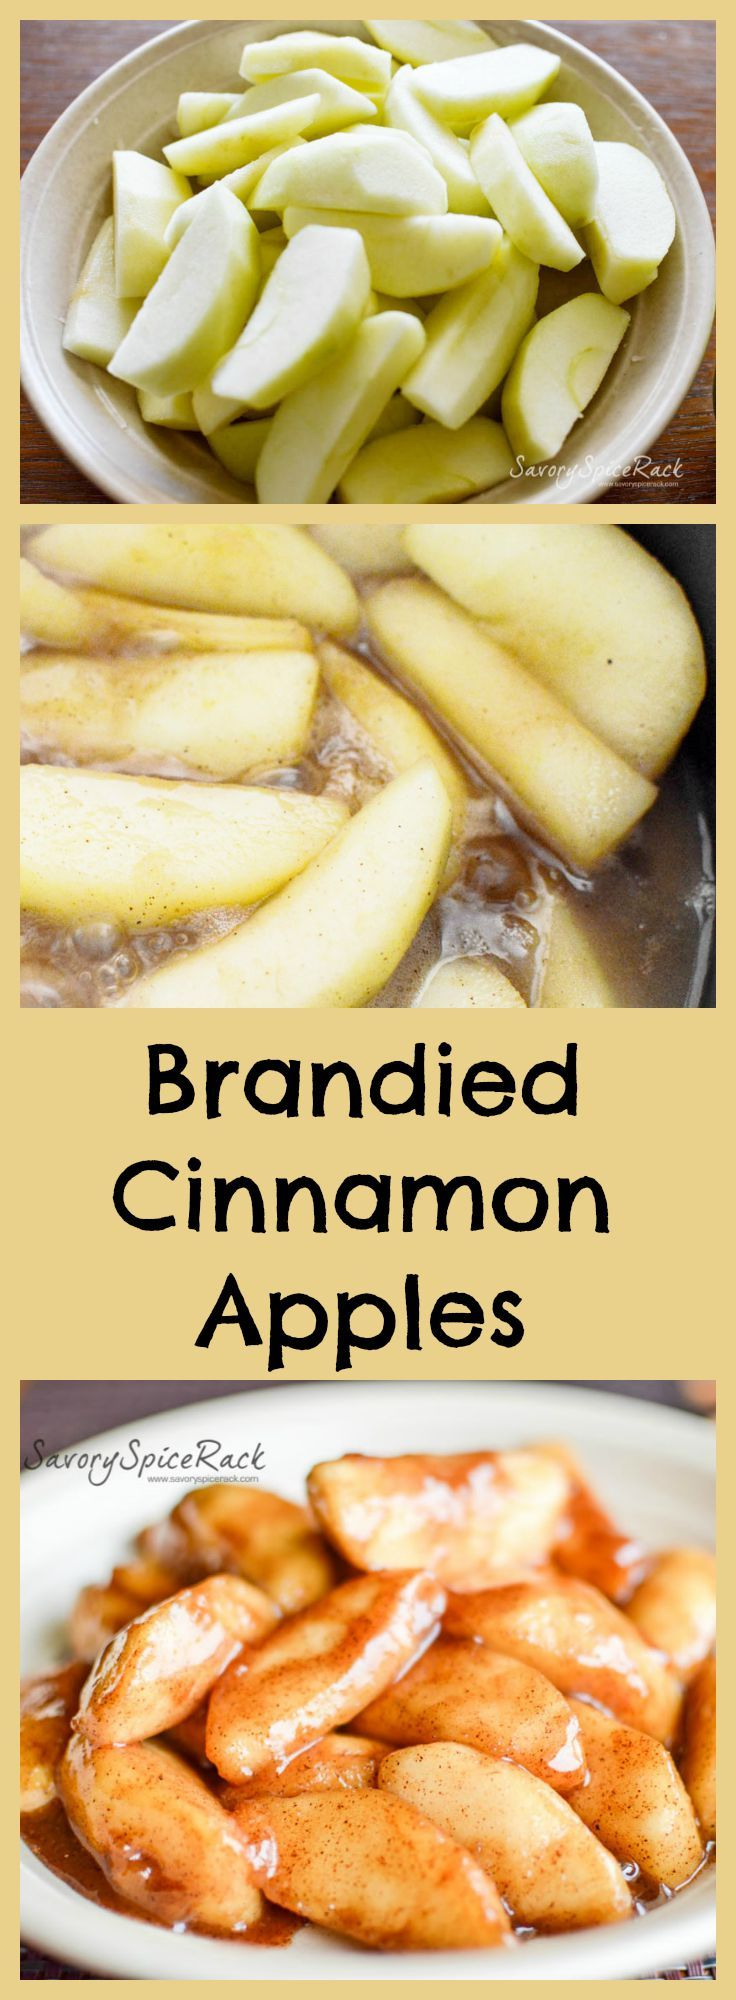 Cinnamon Apples cooked with Brandy.  Perfect topping for pancakes, ice cream, and more.